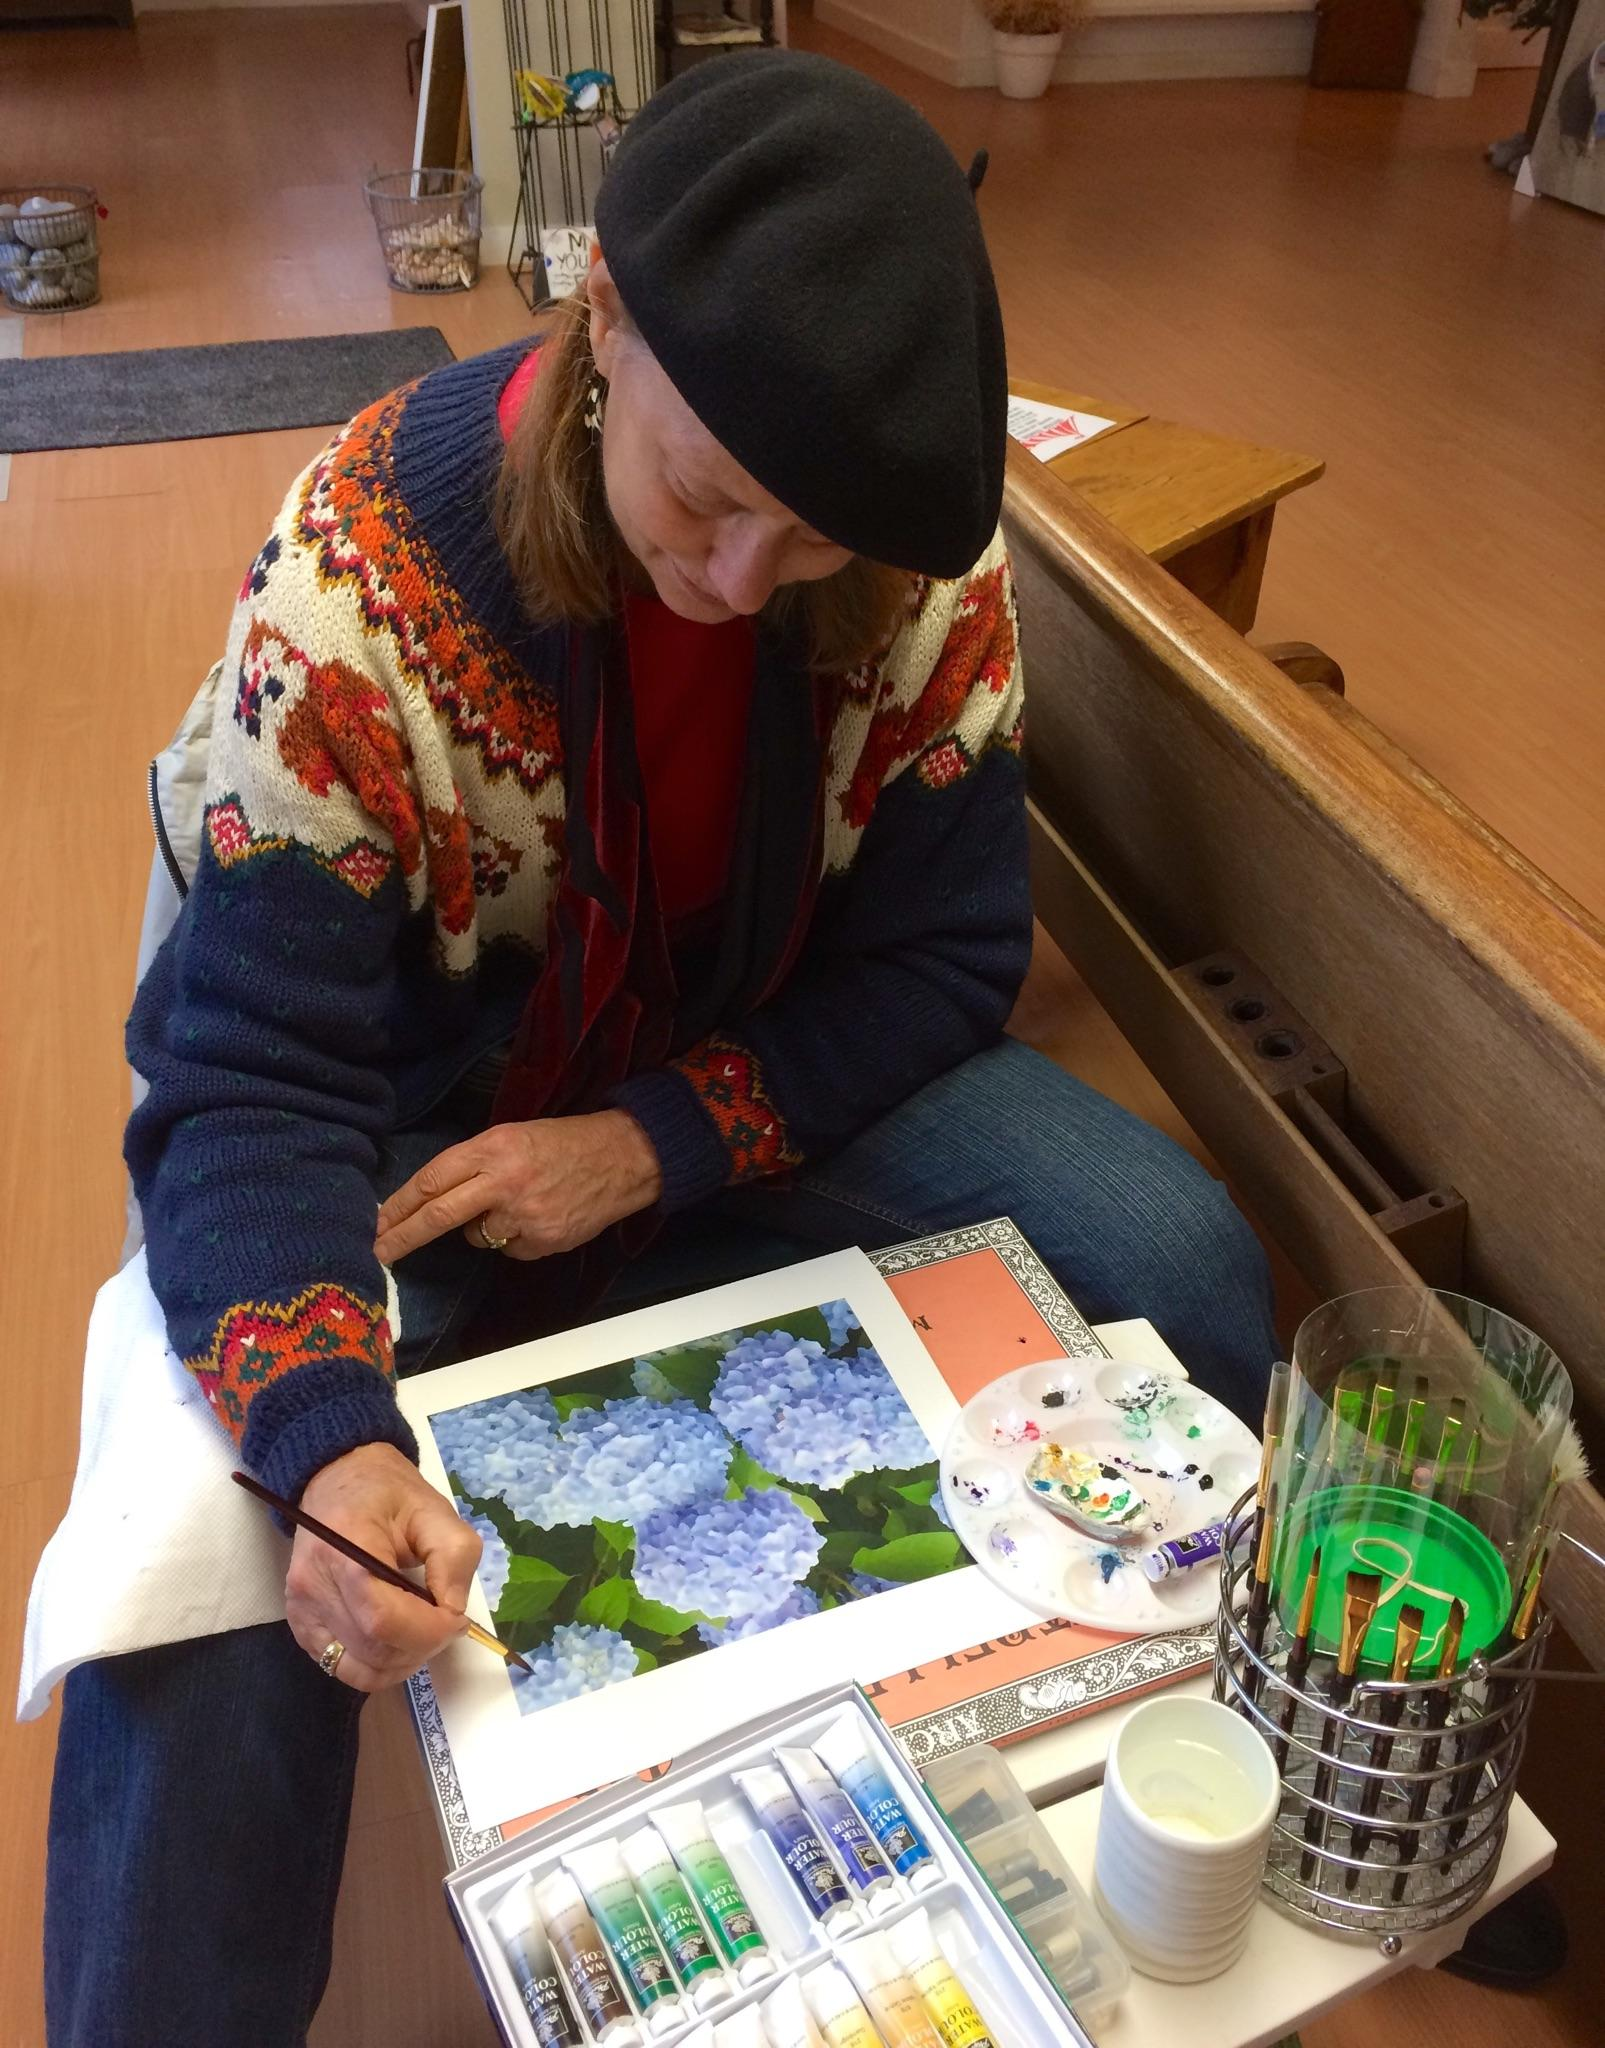 Heather painting at Local Color Art Gallery in Chatham. Photo Credit: Rebecca Sher